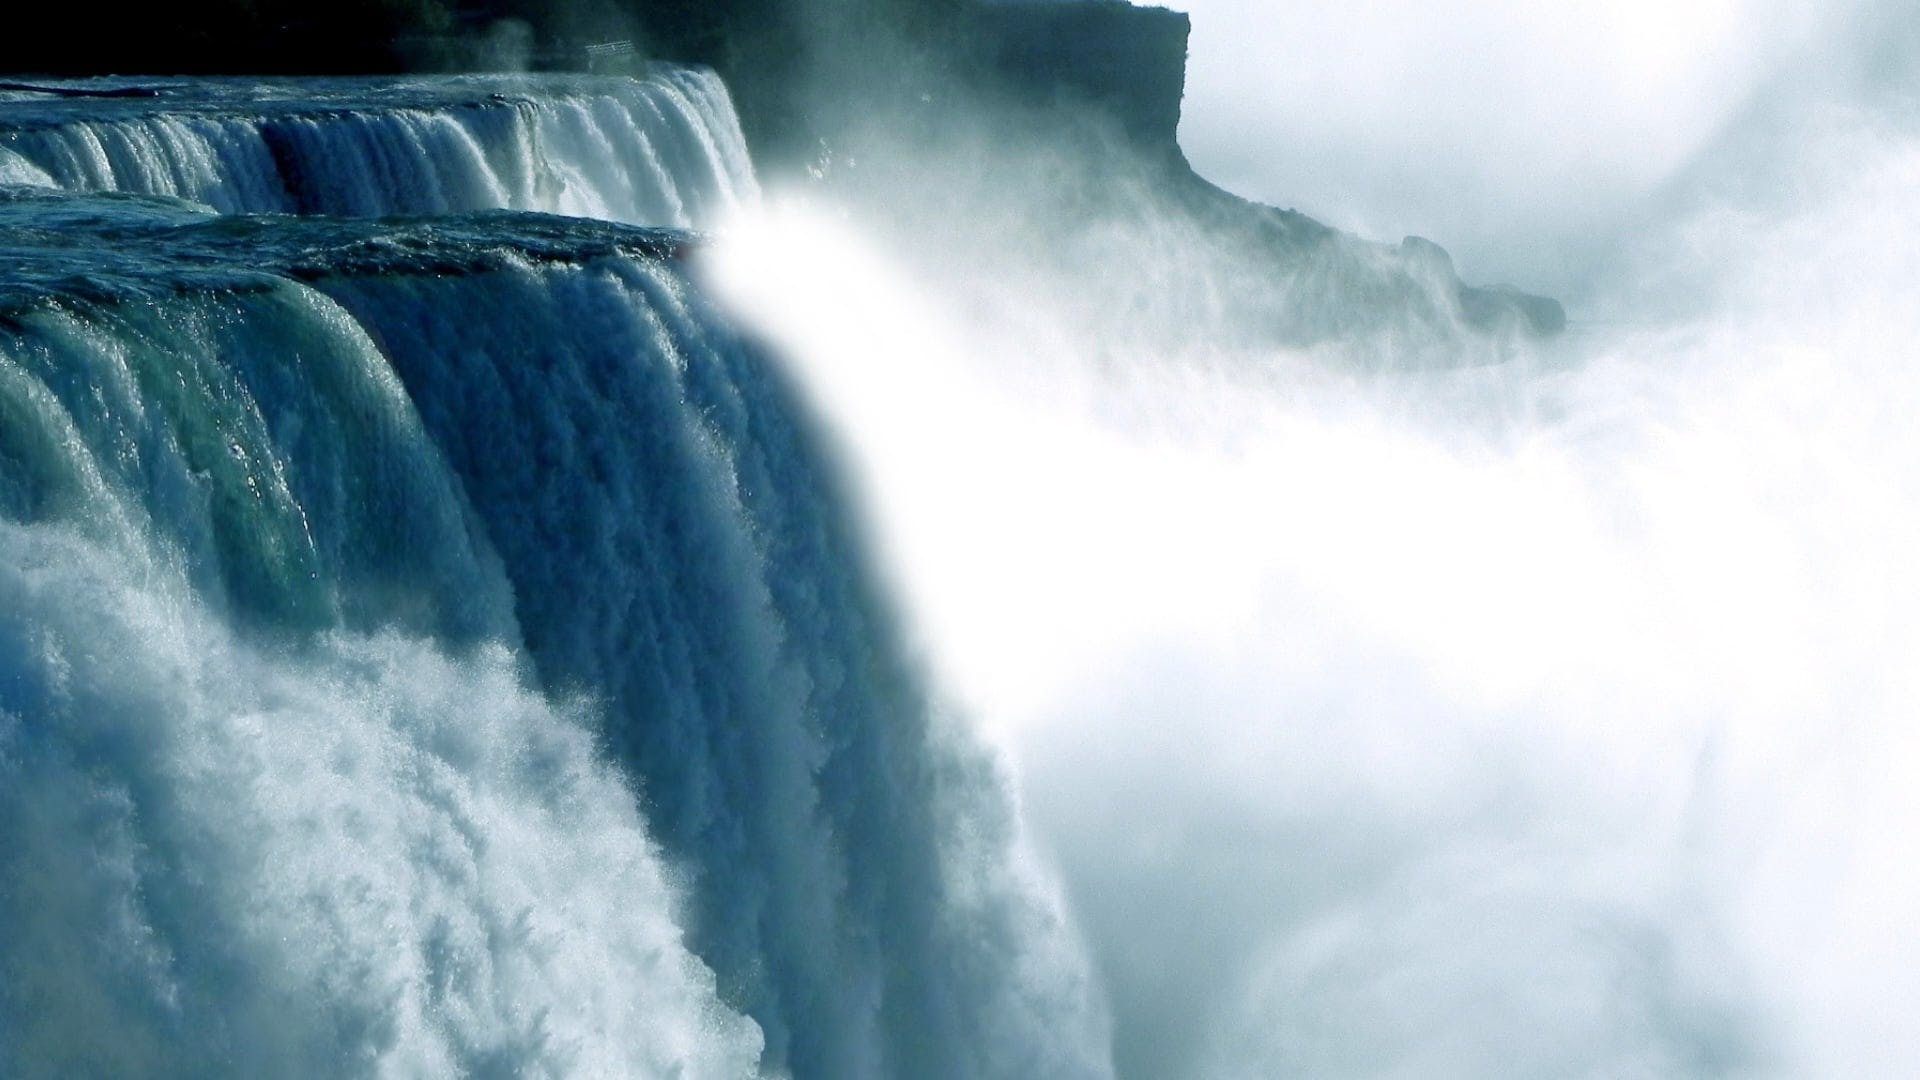 Amazing Shot Of Waterfalls In Slow Motion